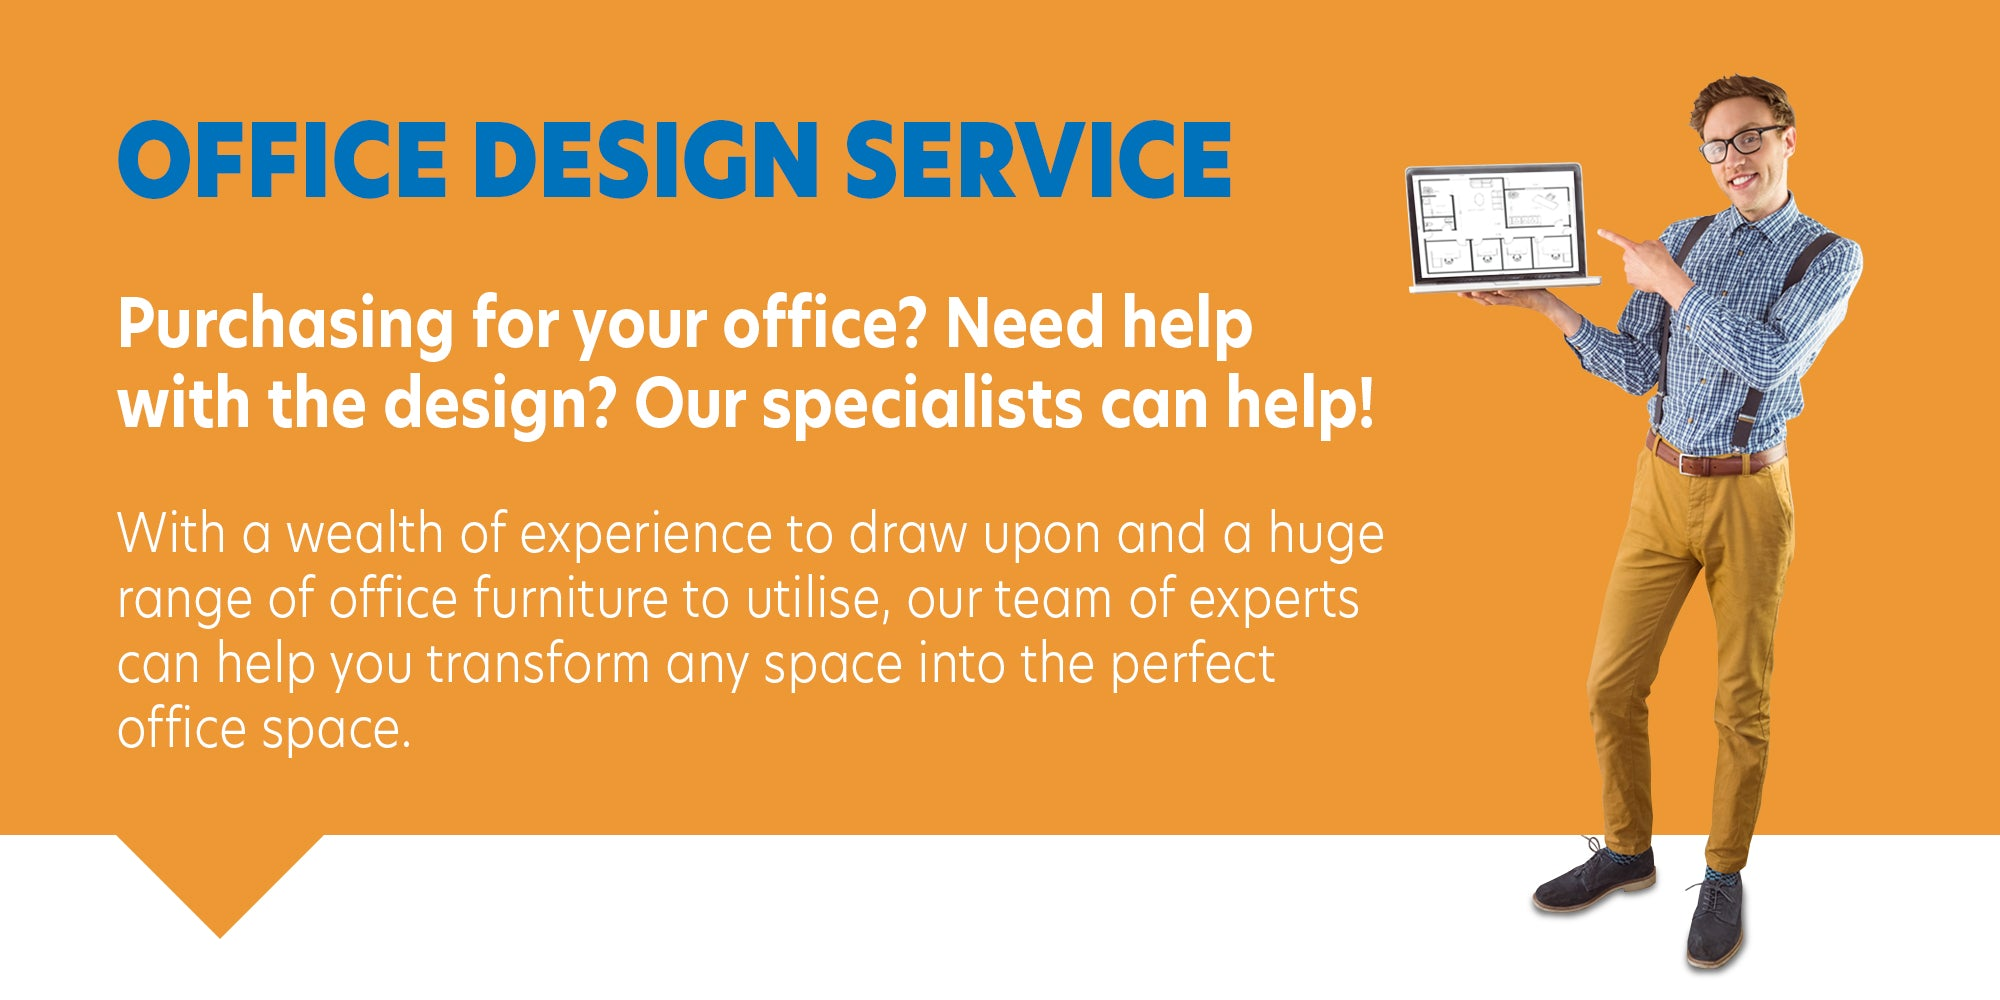 man offering office design service